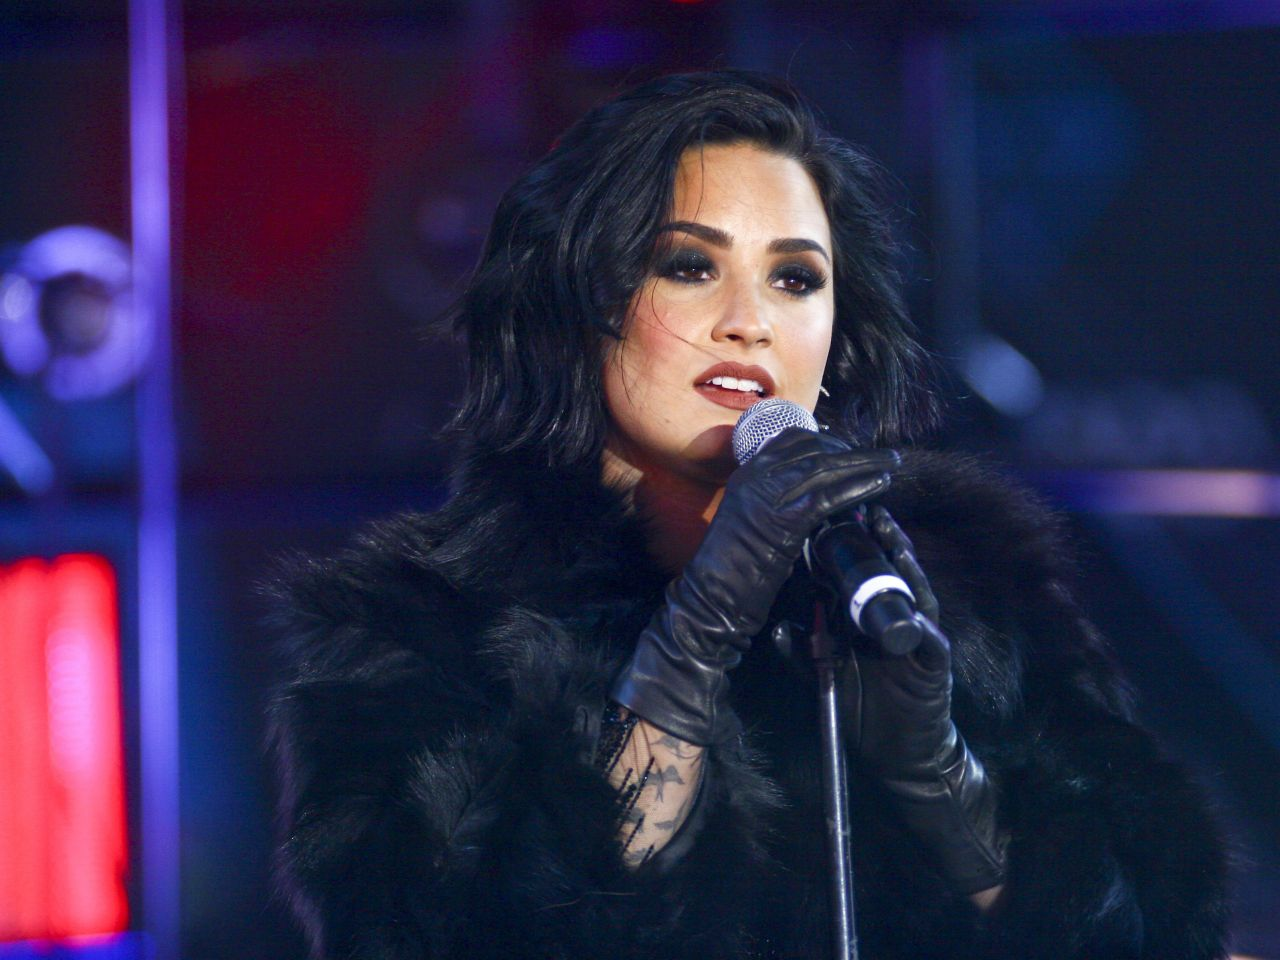 demi-lovato-performing-in-times-square-ny-new-year-s-rockin-eve-12